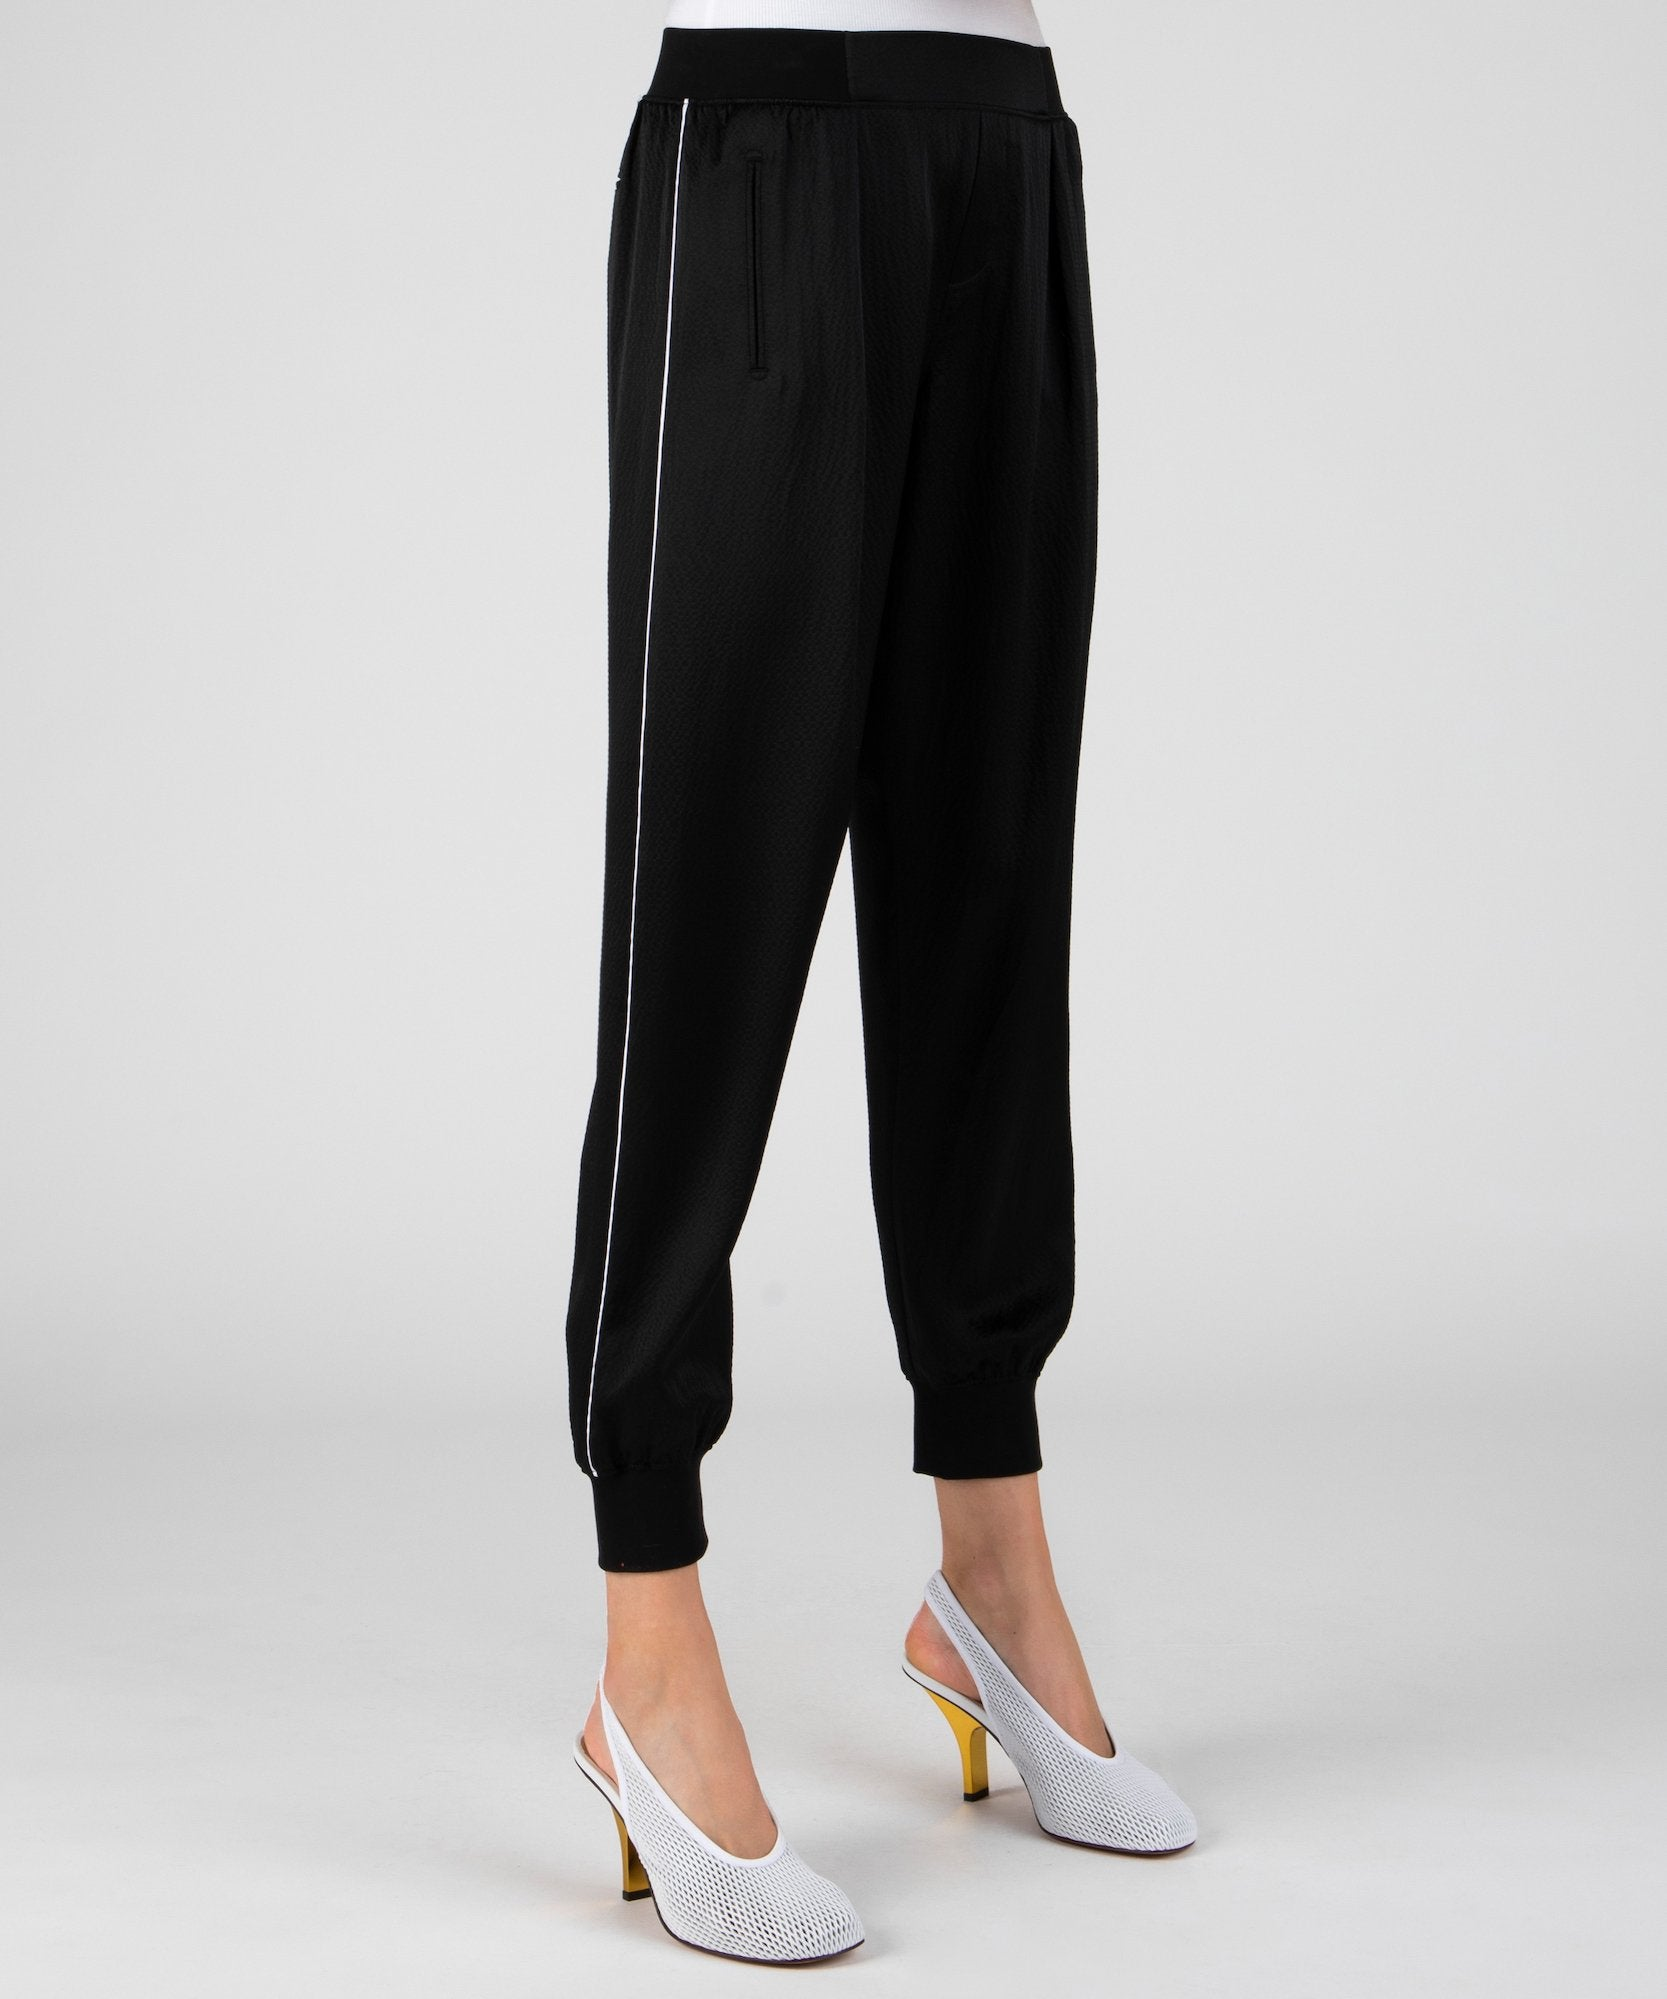 Black Hammered Silk Pull-On Sweatpants - Women's Silk Pants by ATM Anthony Thomas Melillo